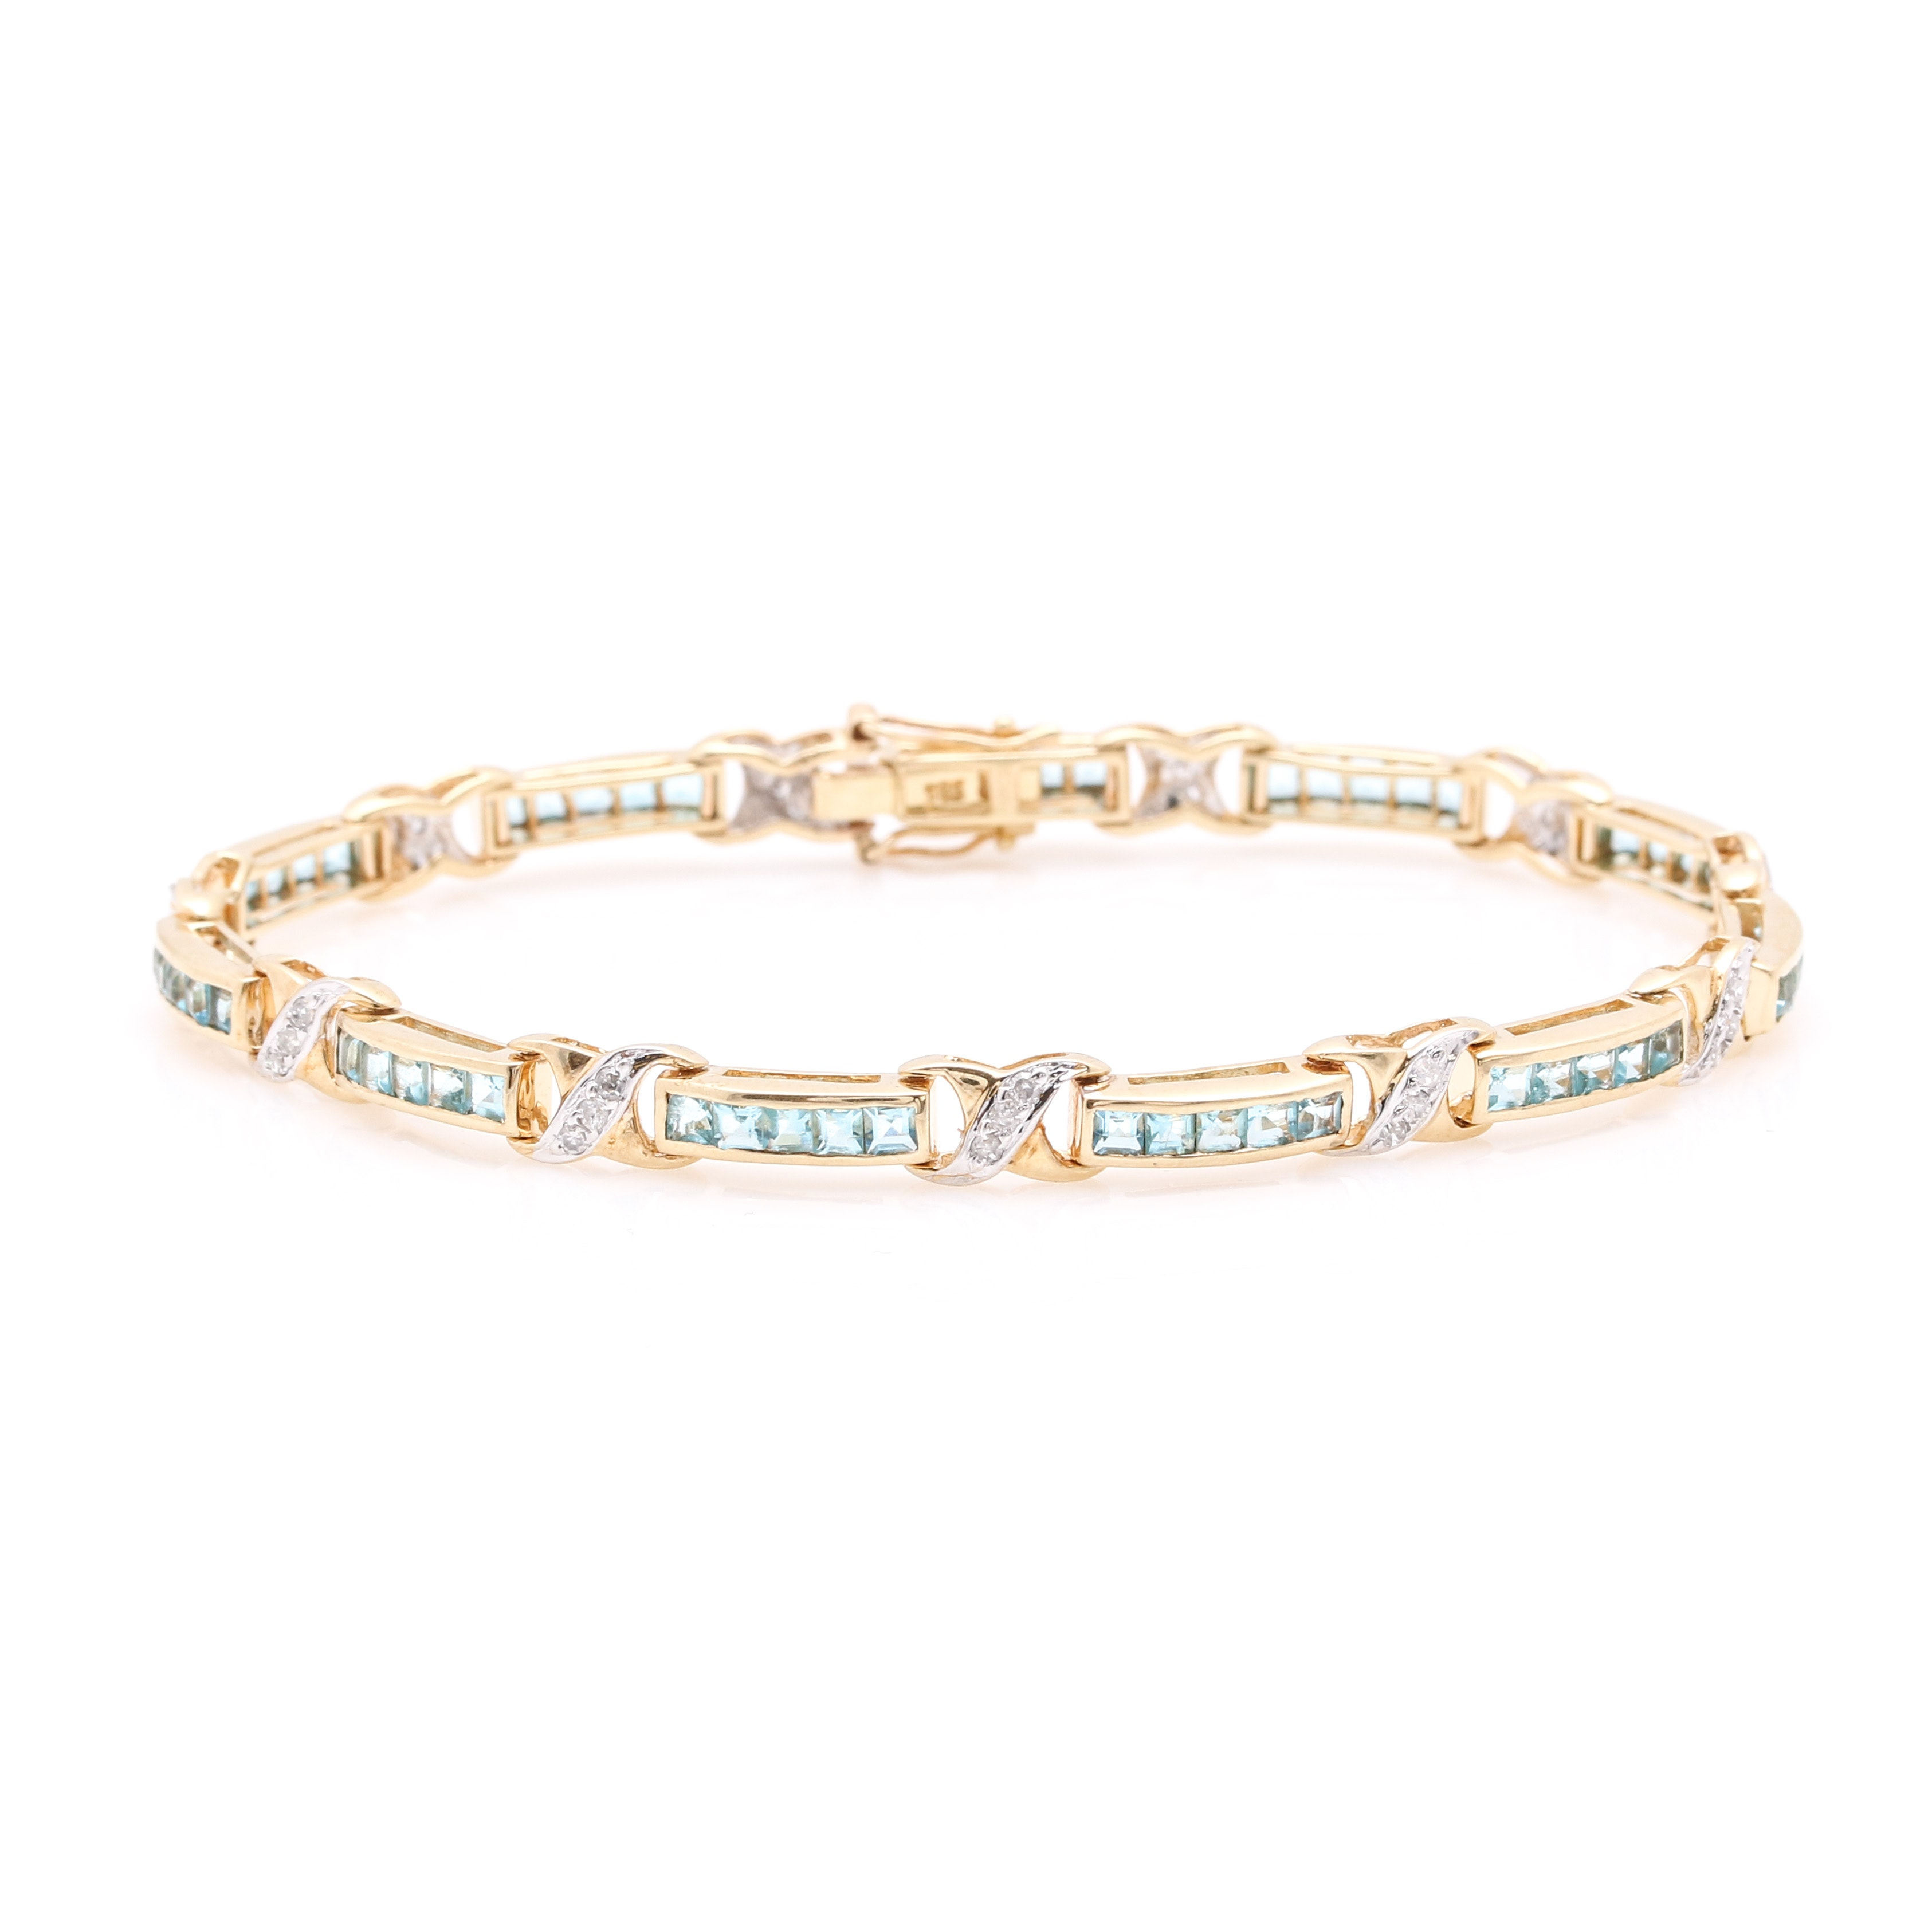 14K Yellow Gold Diamond and Glass Tennis Bracelet